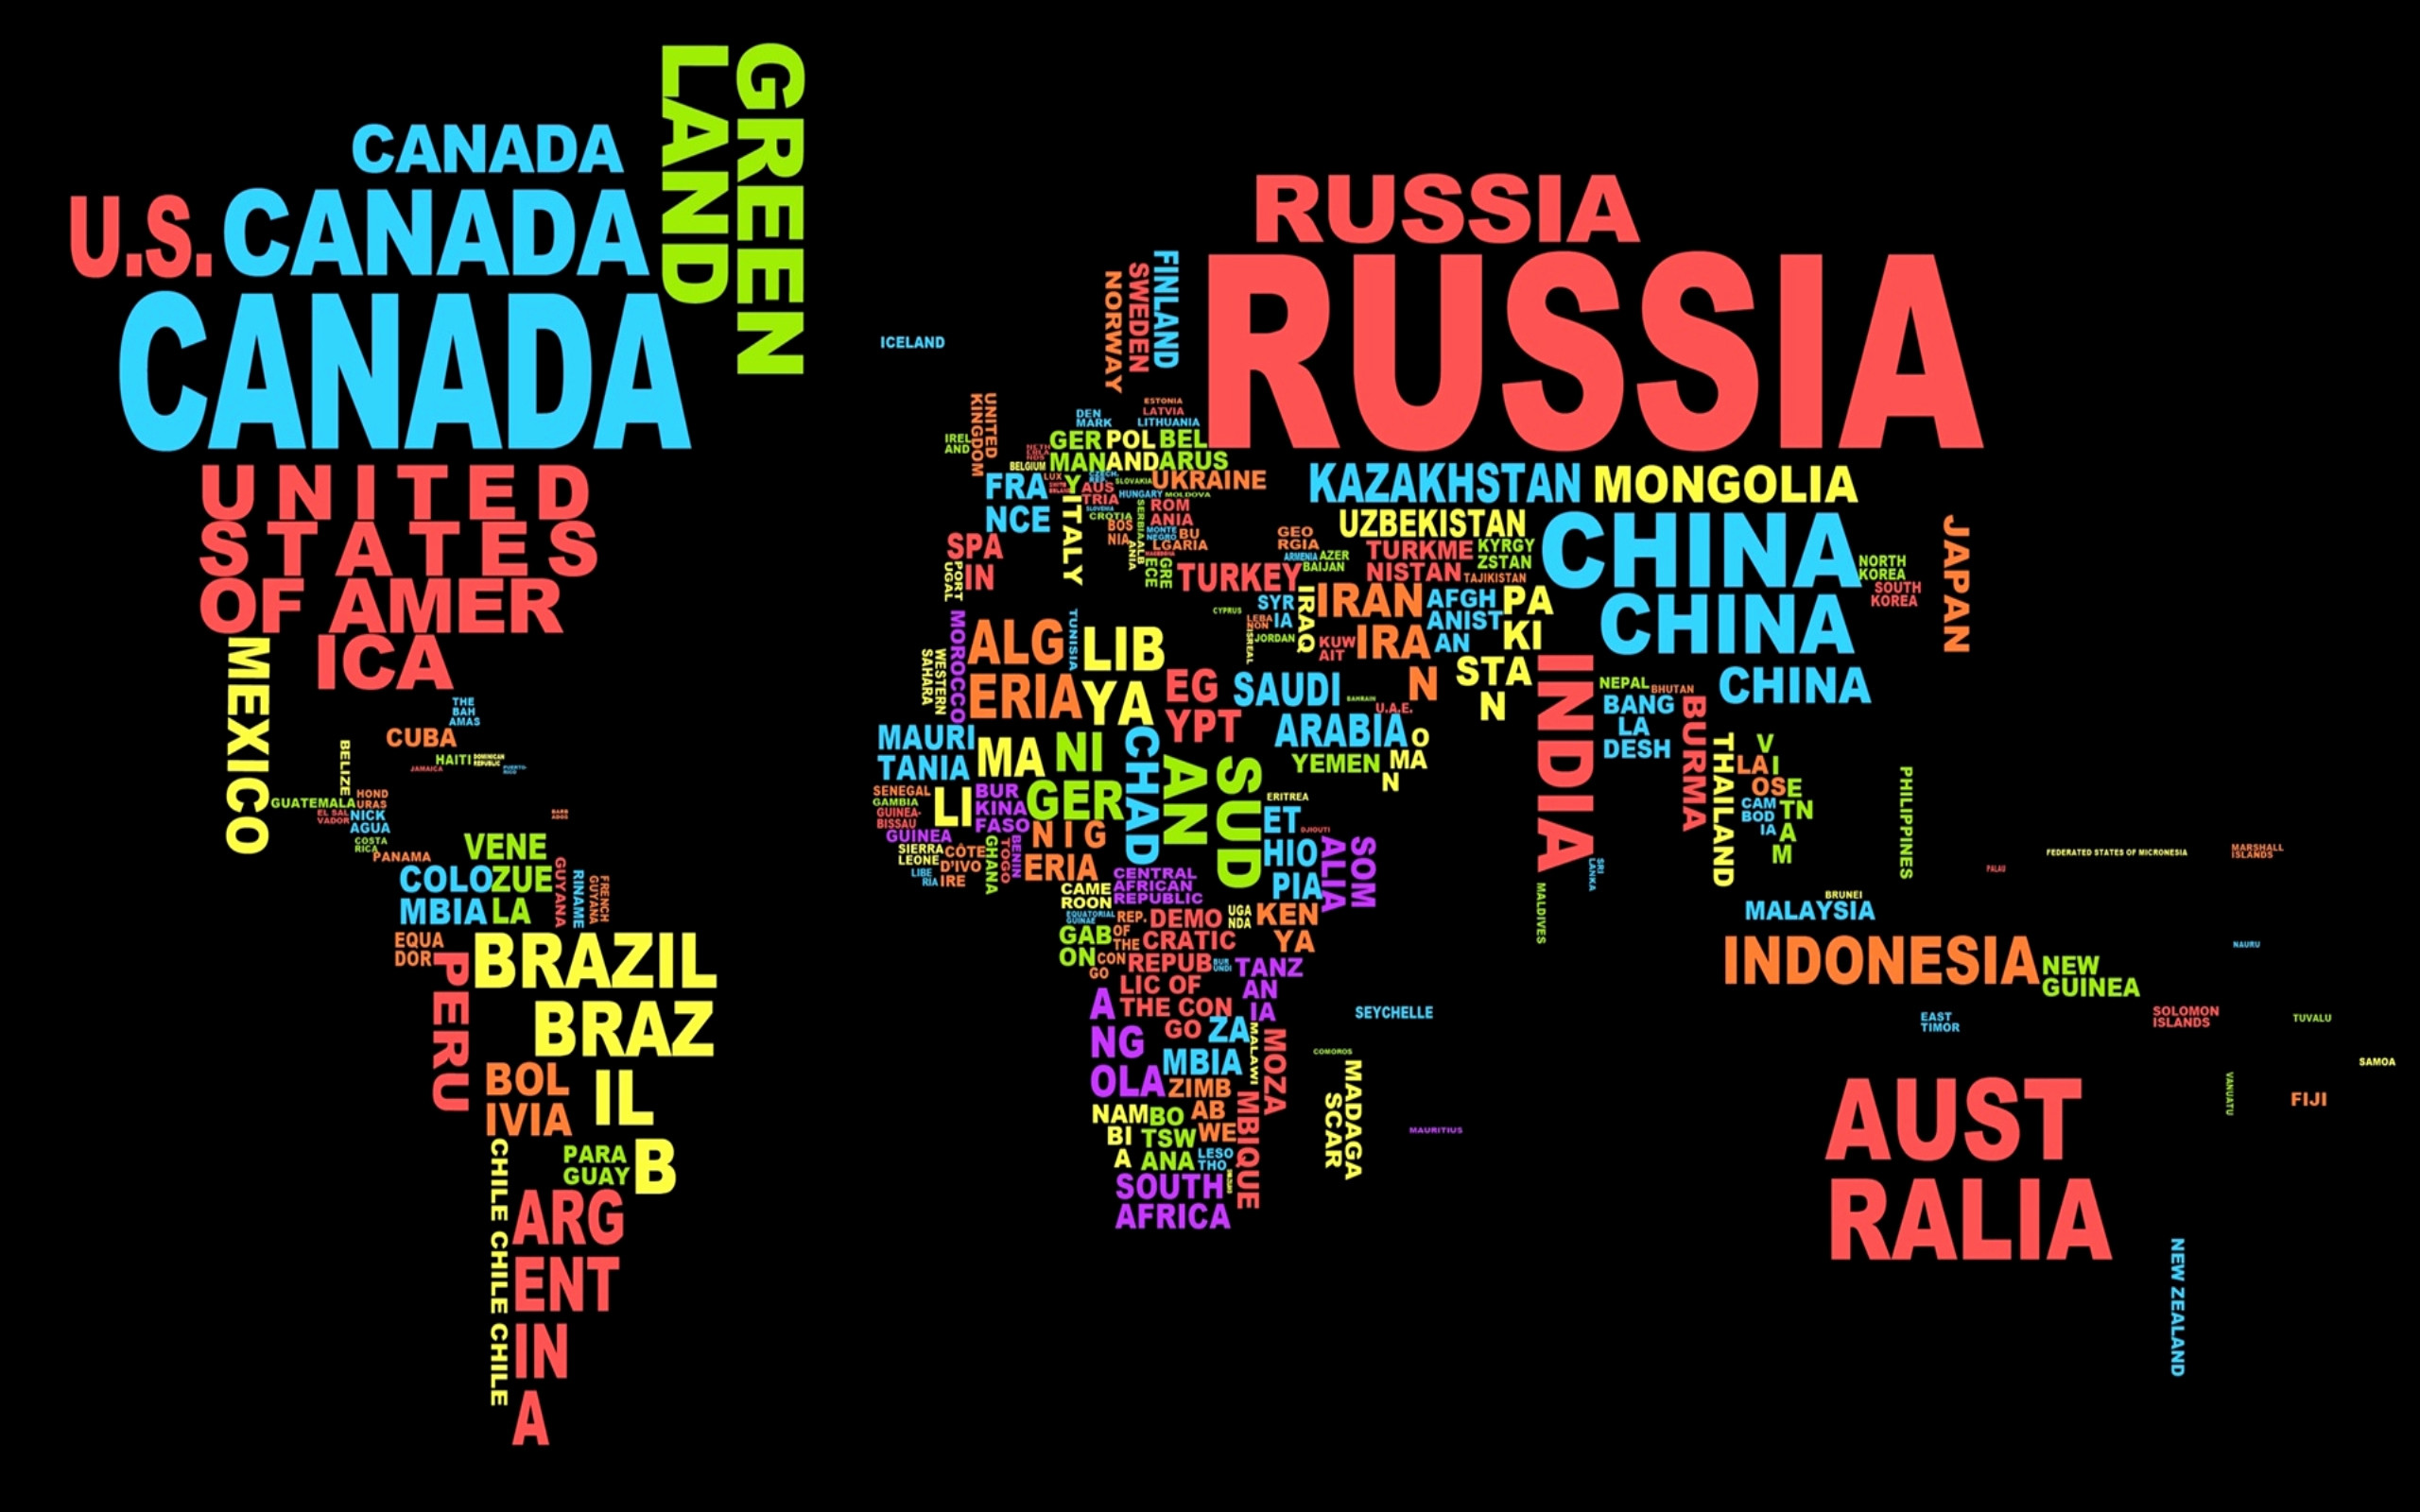 World map wallpapers high resolution 66 background pictures 1920x1440 hd wallpaper high resolution images iphone background samsung wallpaper amazing lovely smart phone wallpaper for tablets 19201440 wallpaper hd gumiabroncs Image collections